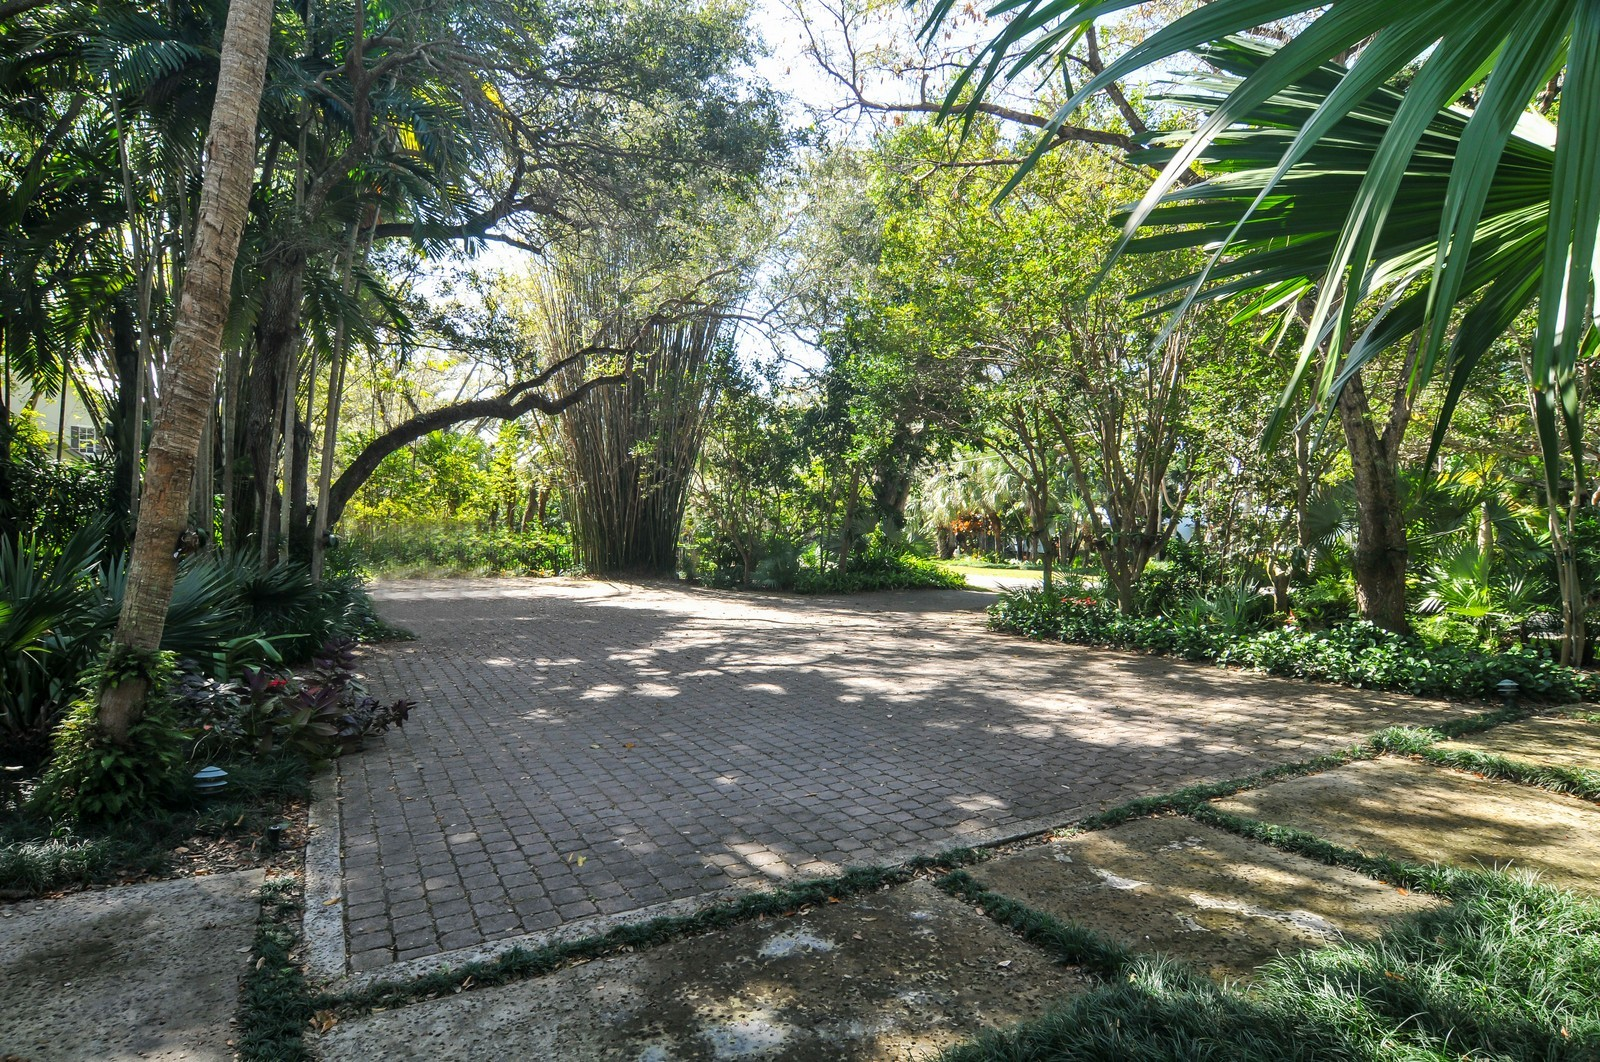 Real Estate Photography - 10225 Coral Creek Rd, Coral Gables, FL, 33156 - Parking Area